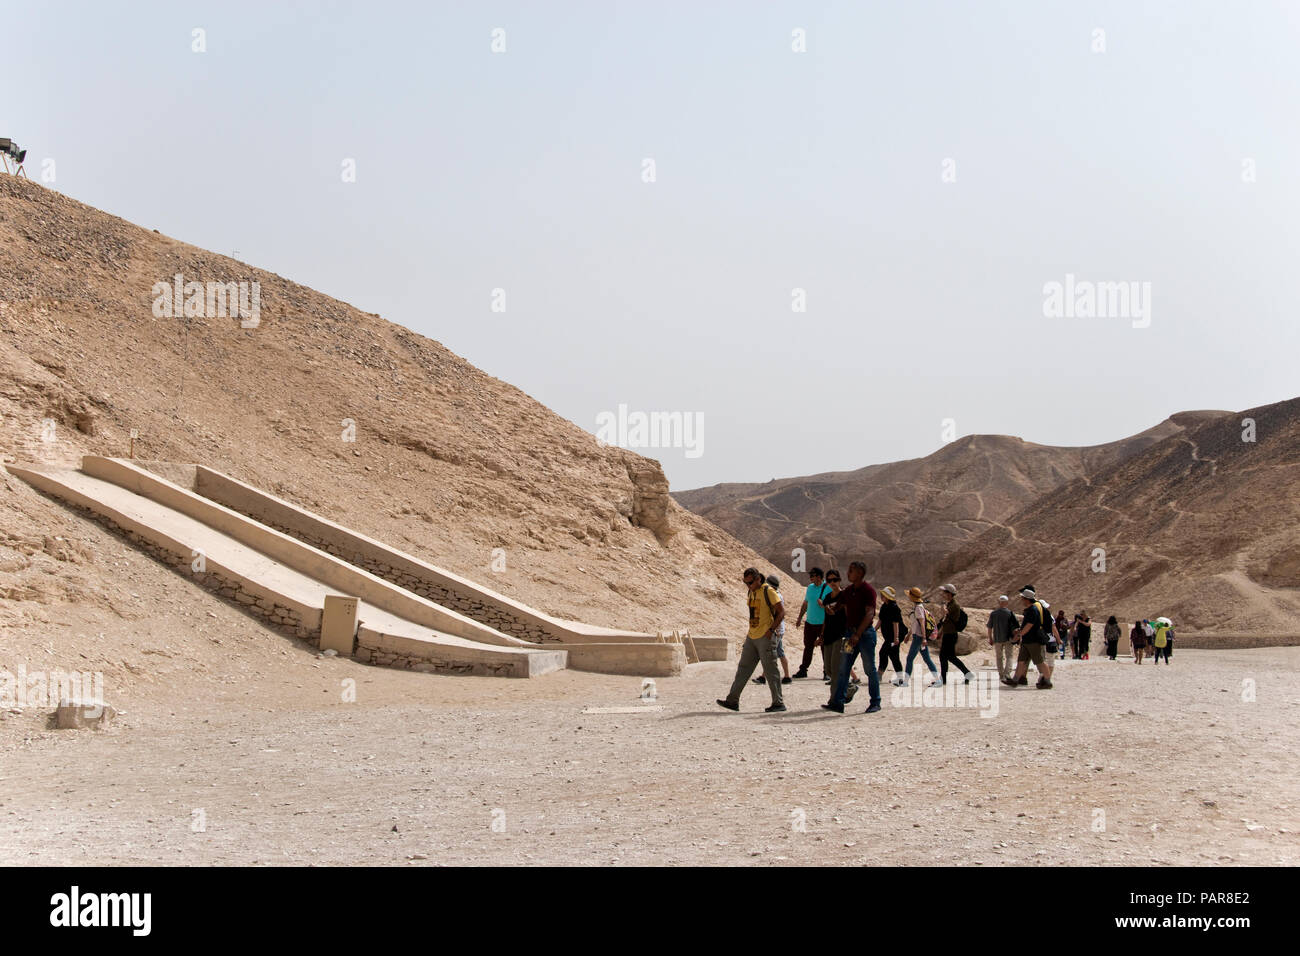 Tourists visit the tombs of ancient Egyptian pharaohs in Egypt's Valley of the Kings, at Luxor, Egypt. - Stock Image